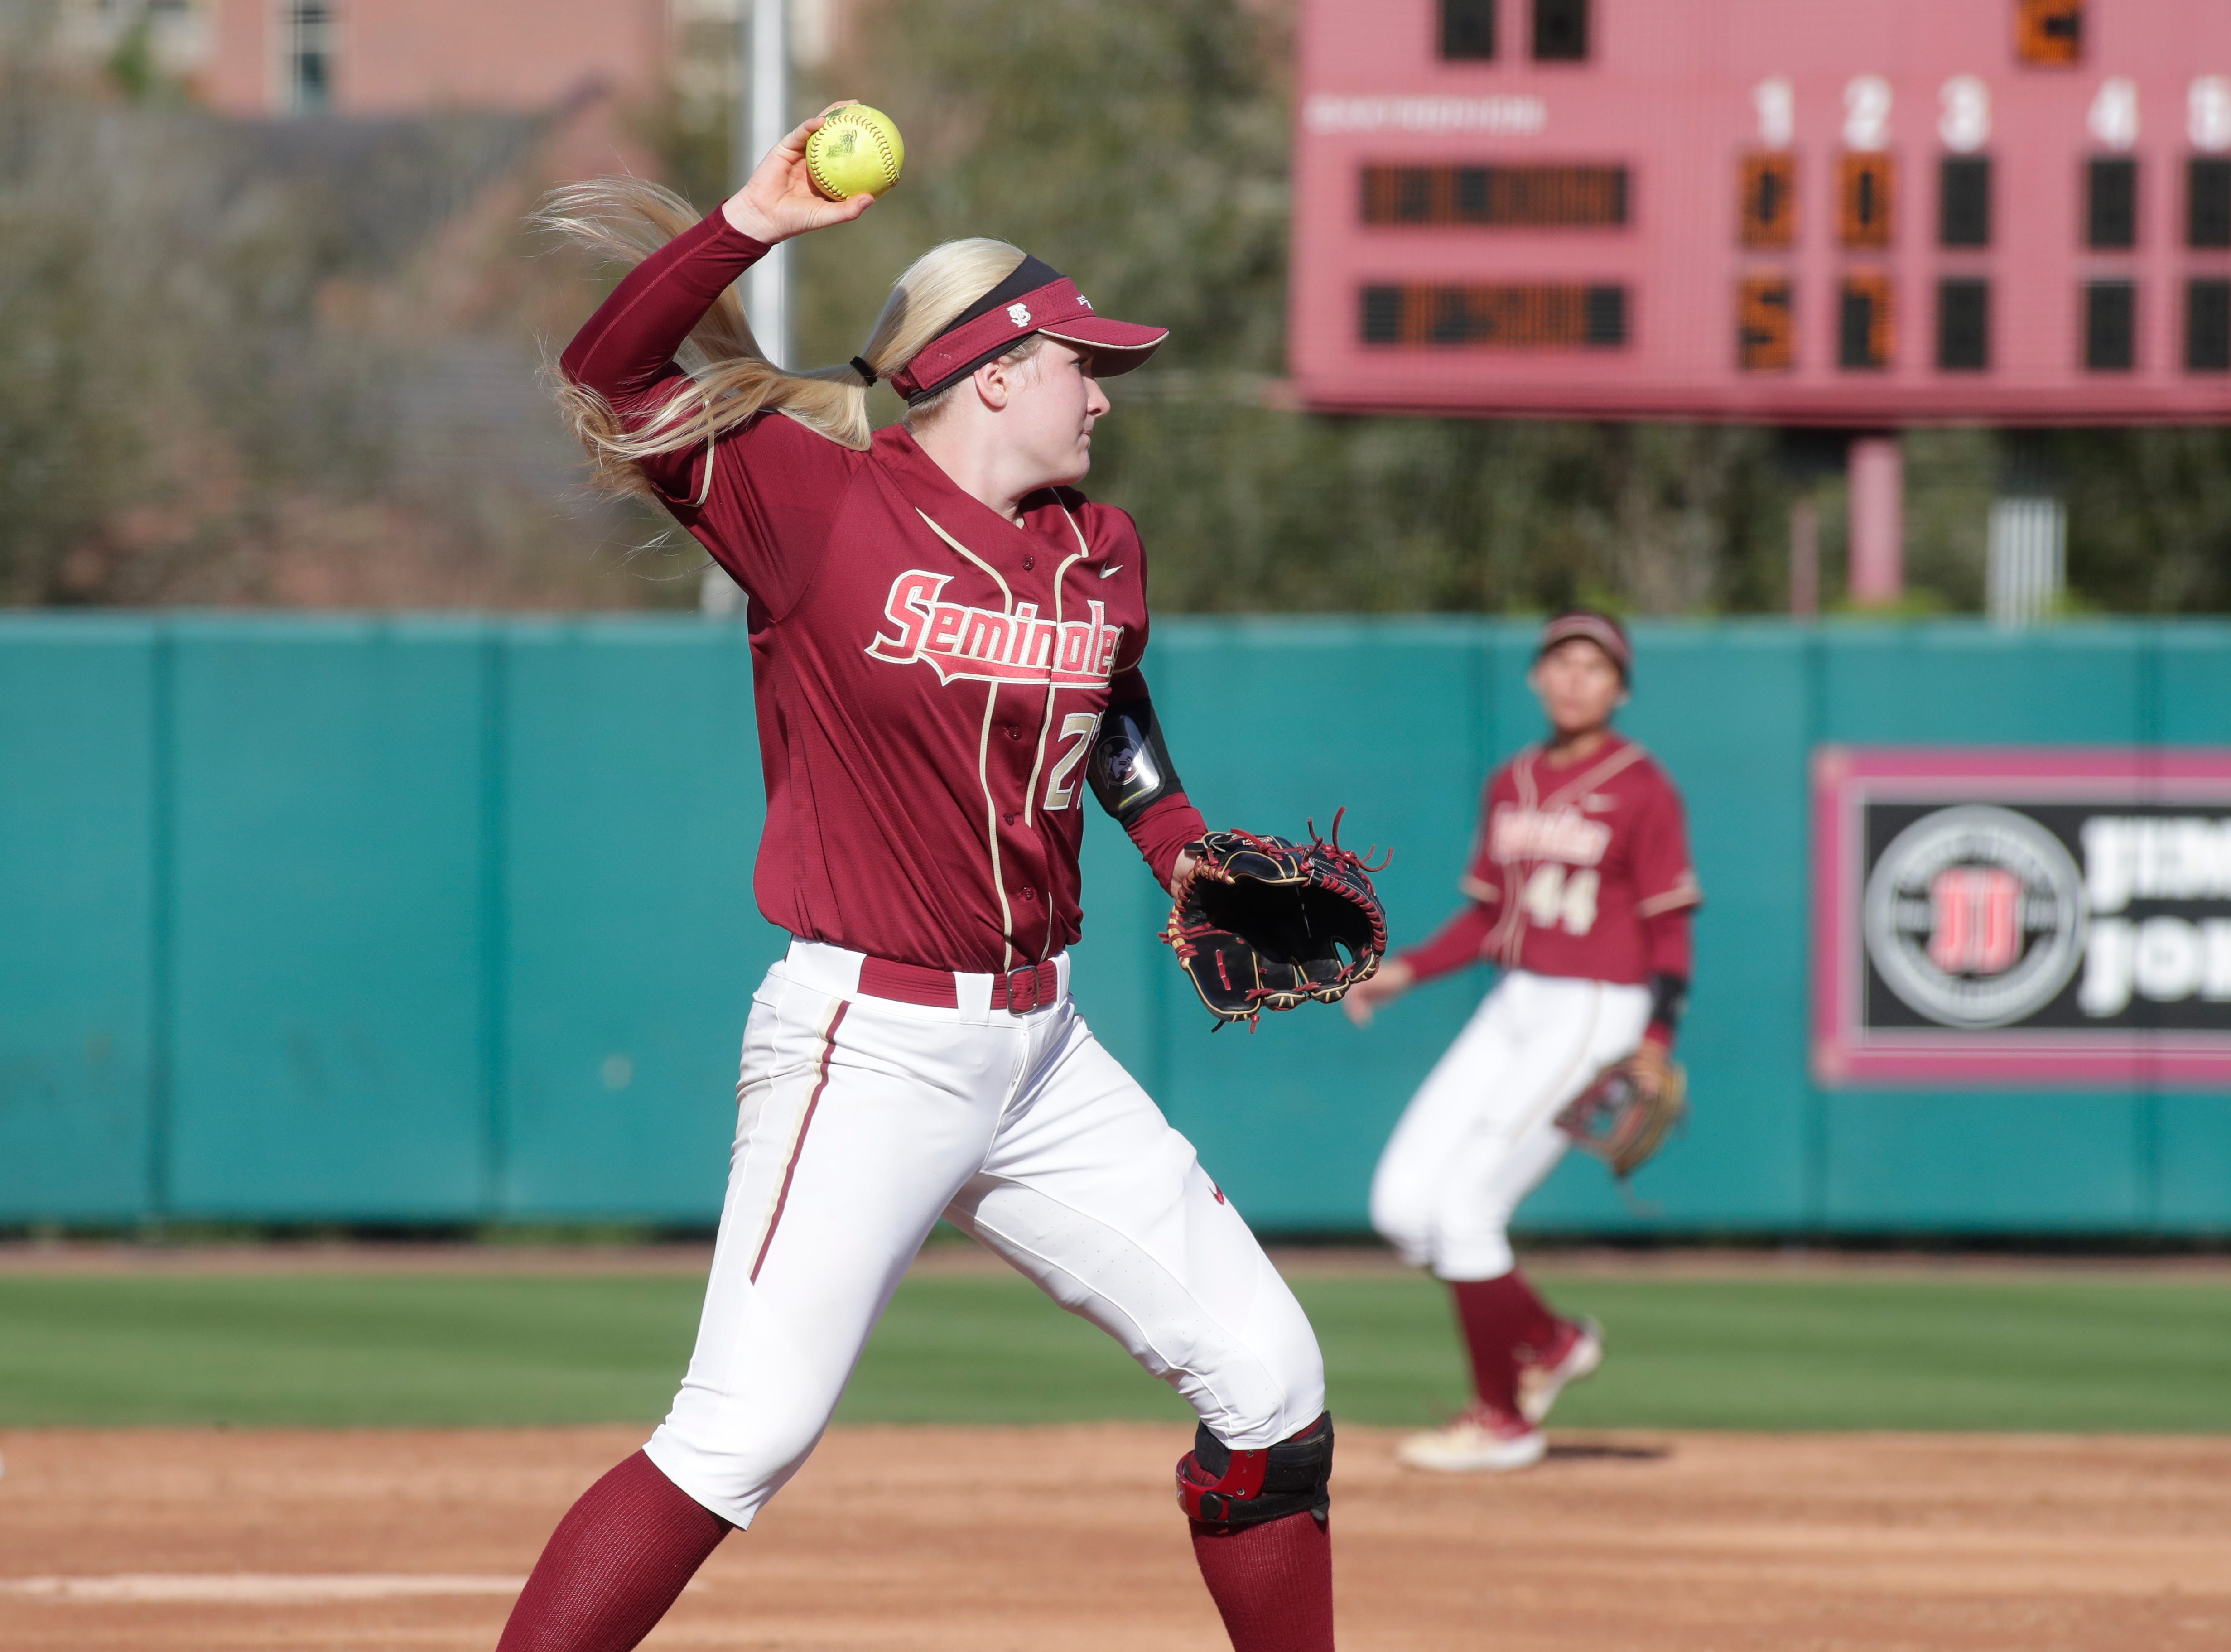 Florida State Seminoles pitcher Kara Bilodeau (27) picks up a ground hit to throw the ball to first base. The Florida State Seminoles host the Elon Phoenixes for the Unconquered Tournament, Friday Feb. 22, 2019.